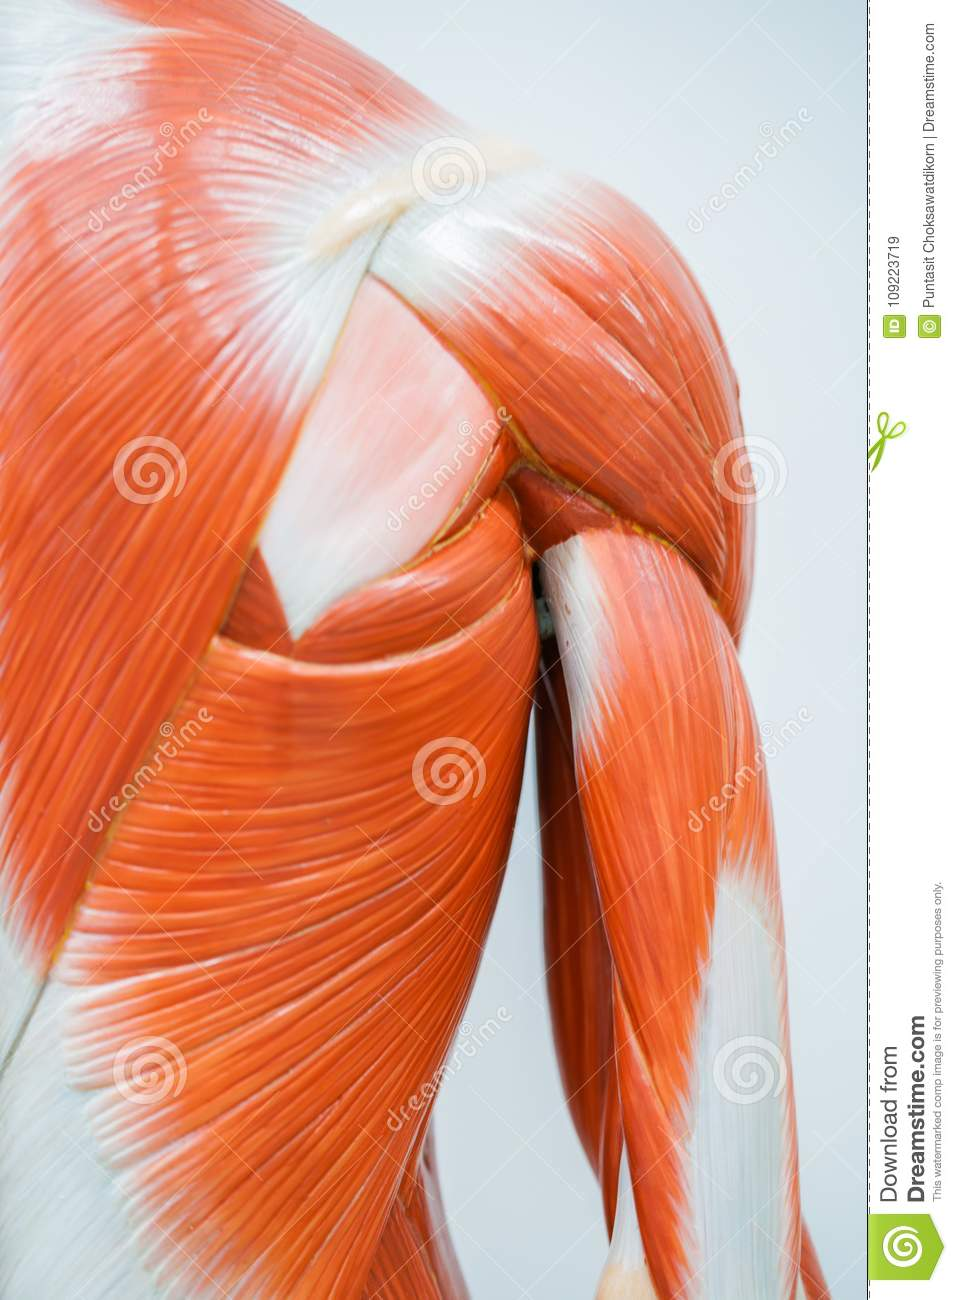 Human shoulder muscle and hand anatomy